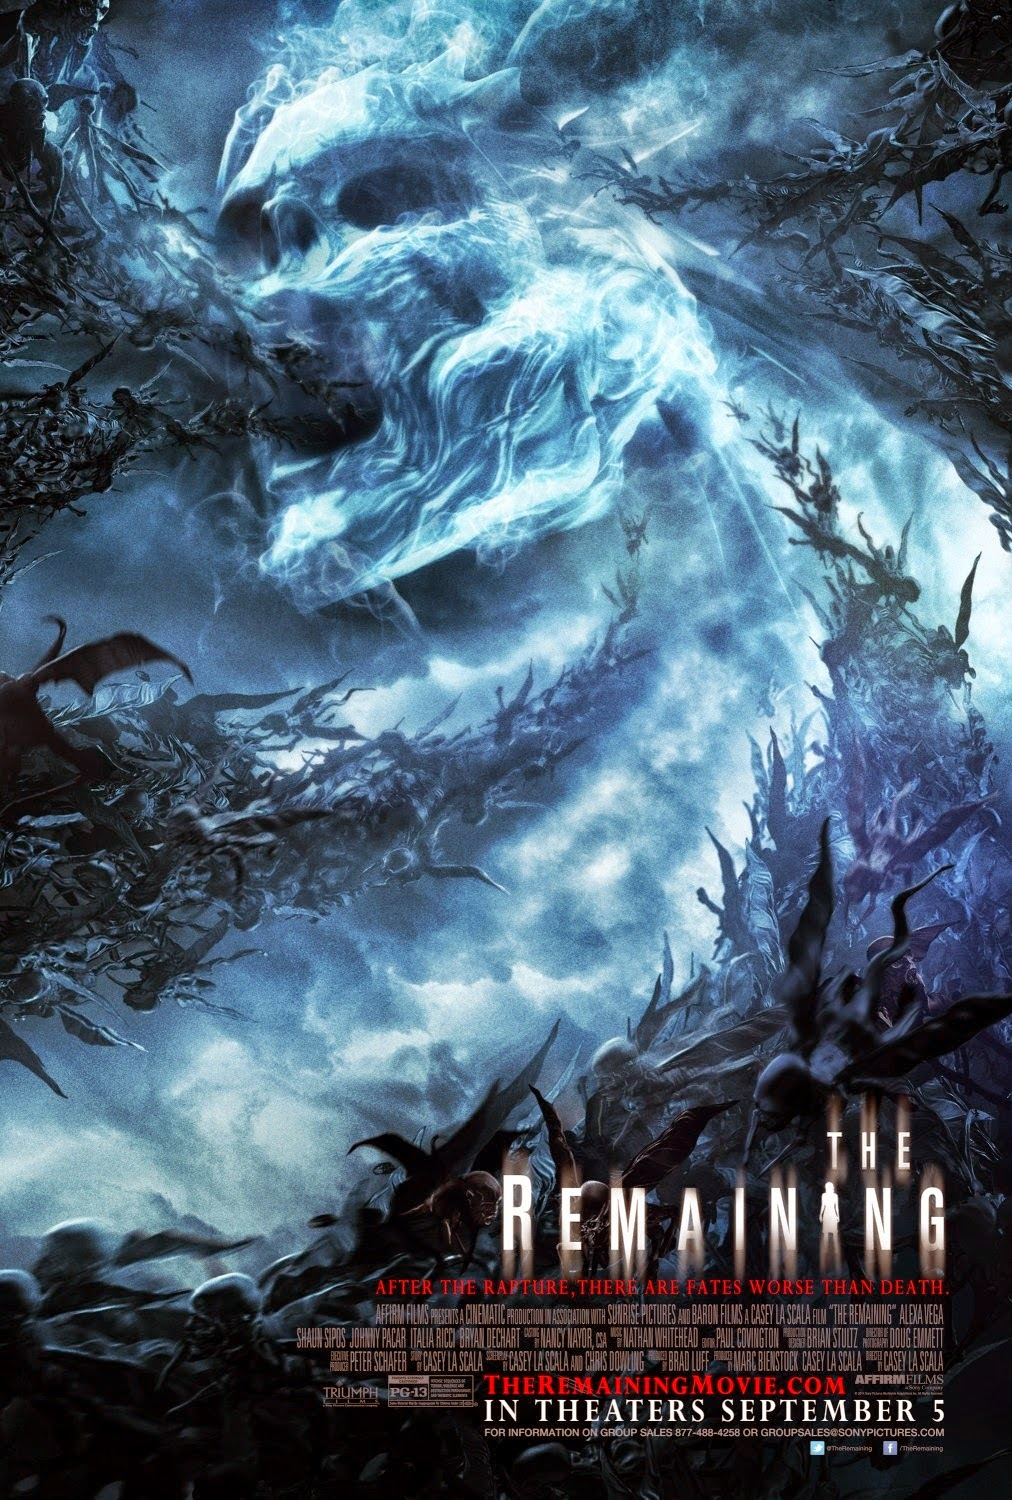 The Remaining: The Remaining (El Remanente) (2014)